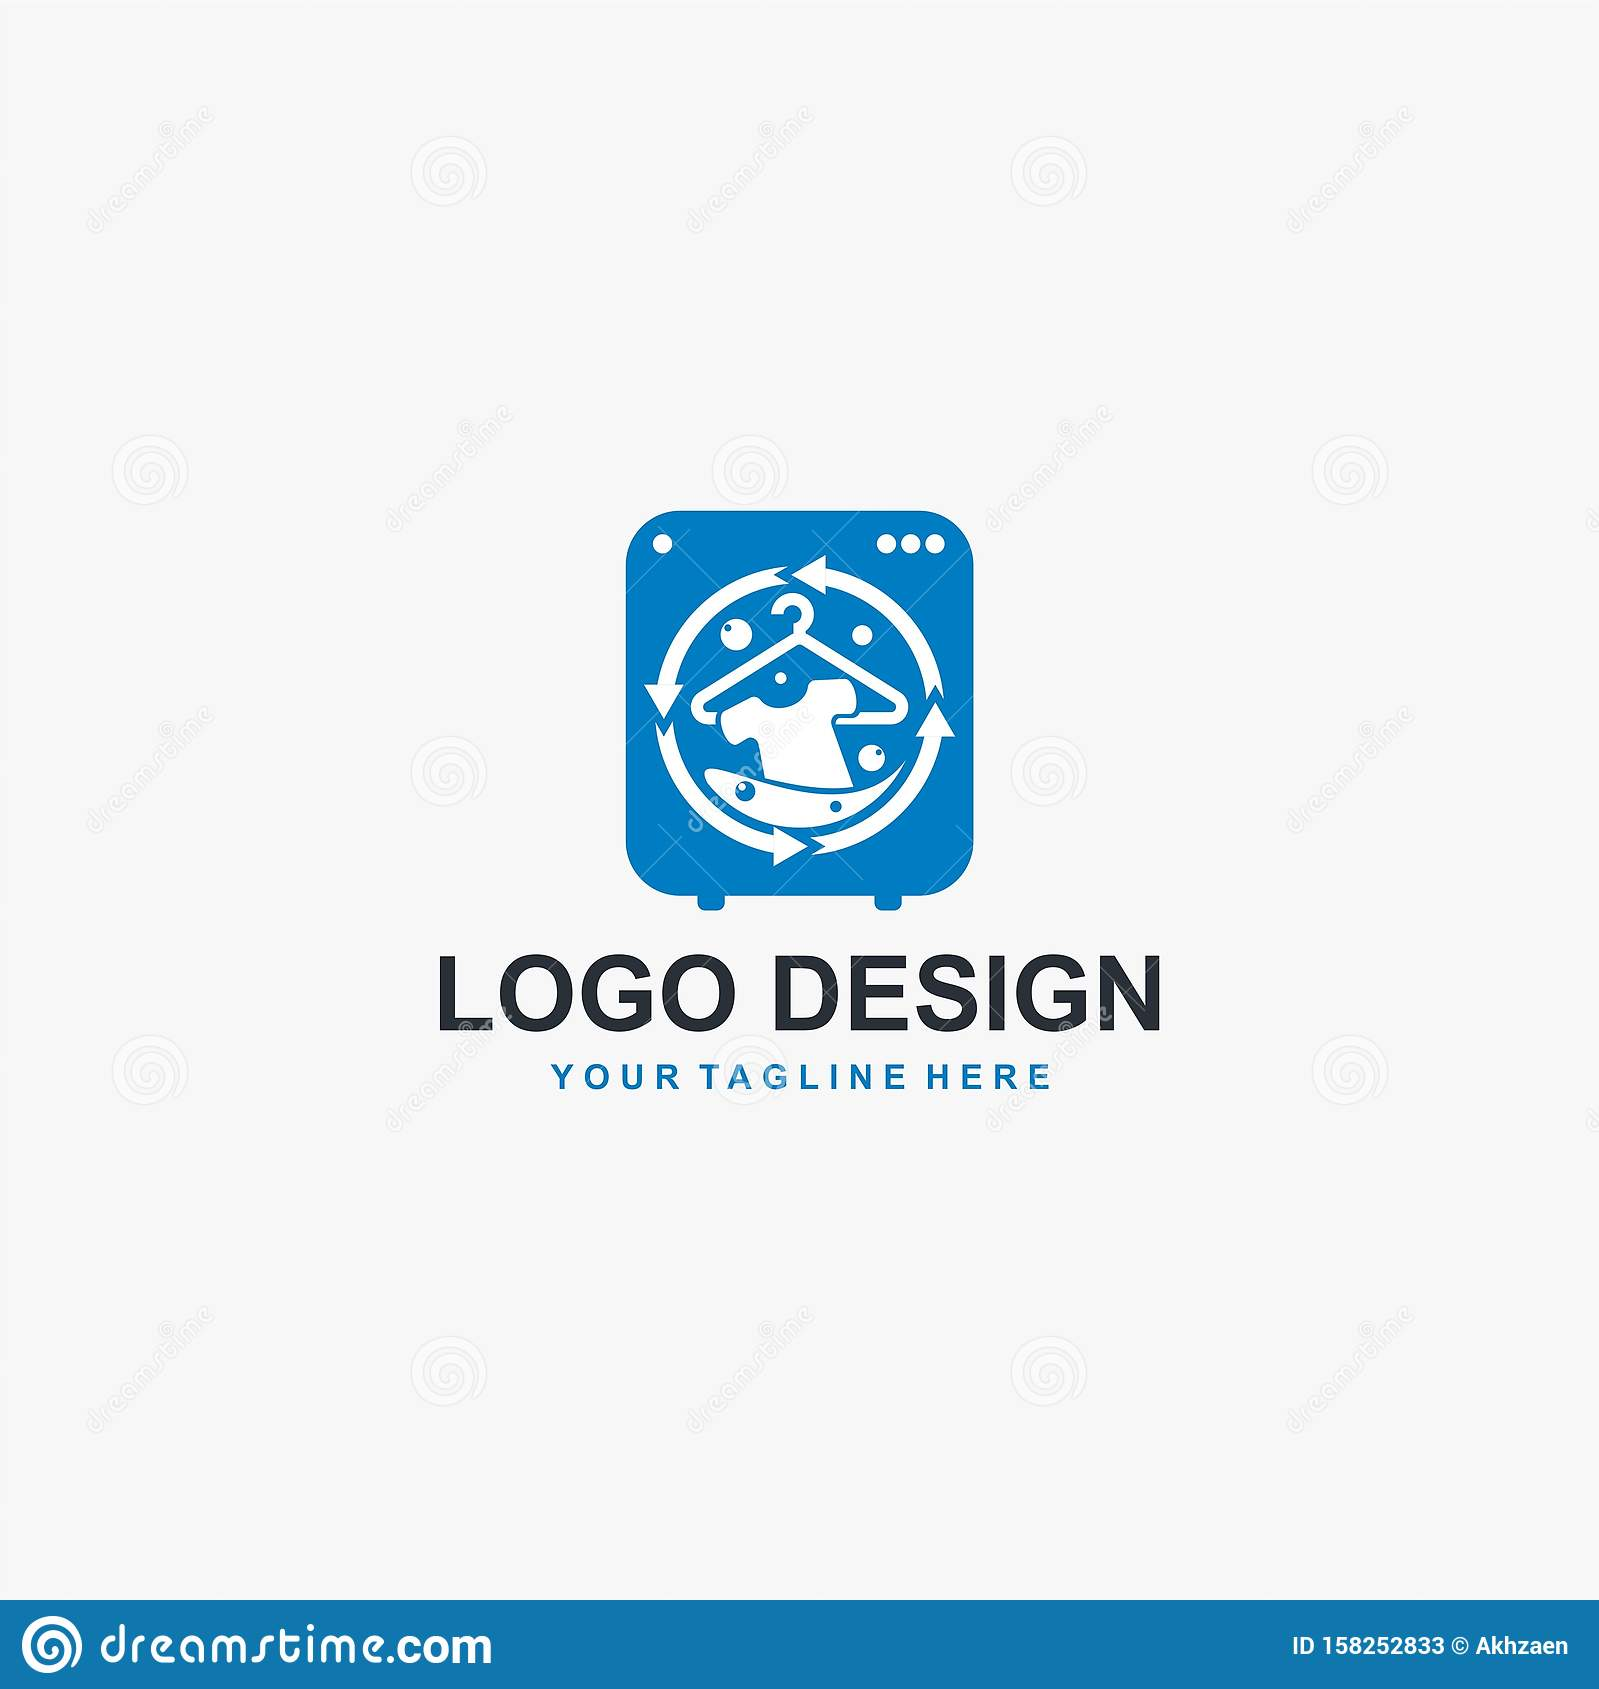 laundry logo design icon vector machine laundry concept illustration bubble icon design business logo design element stock vector illustration of nature isolated 158252833 dreamstime com